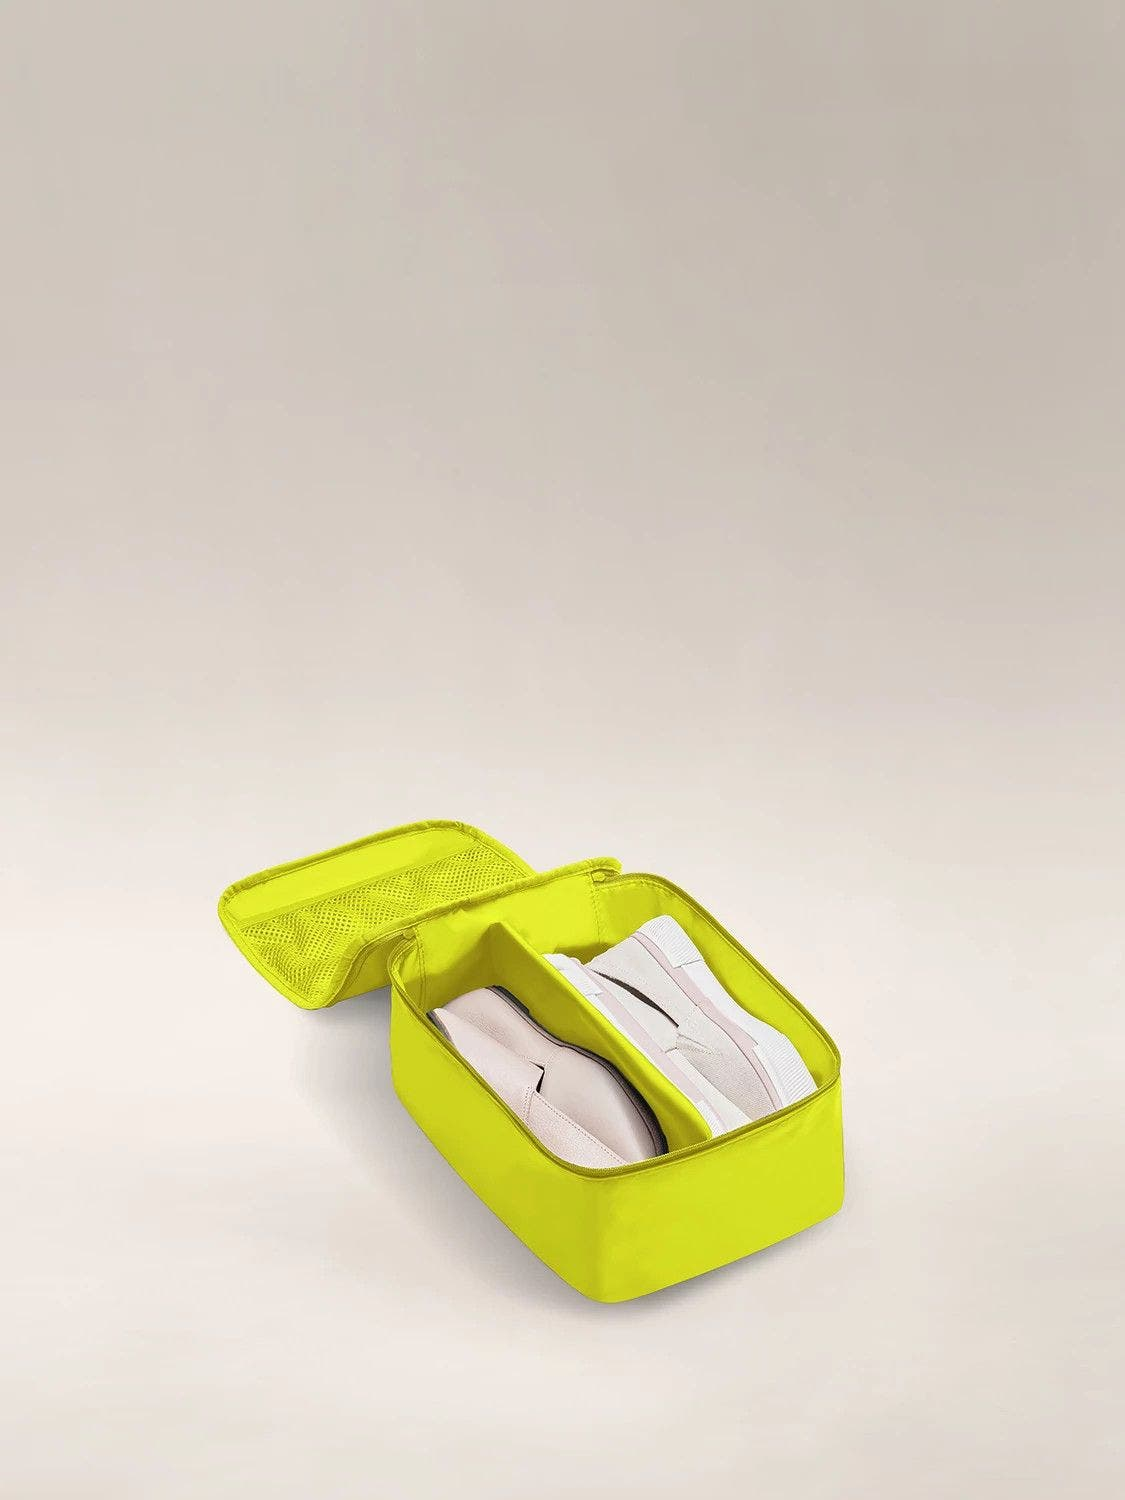 Open view of a small lime green shoe cube packed with a pair of sneakers.